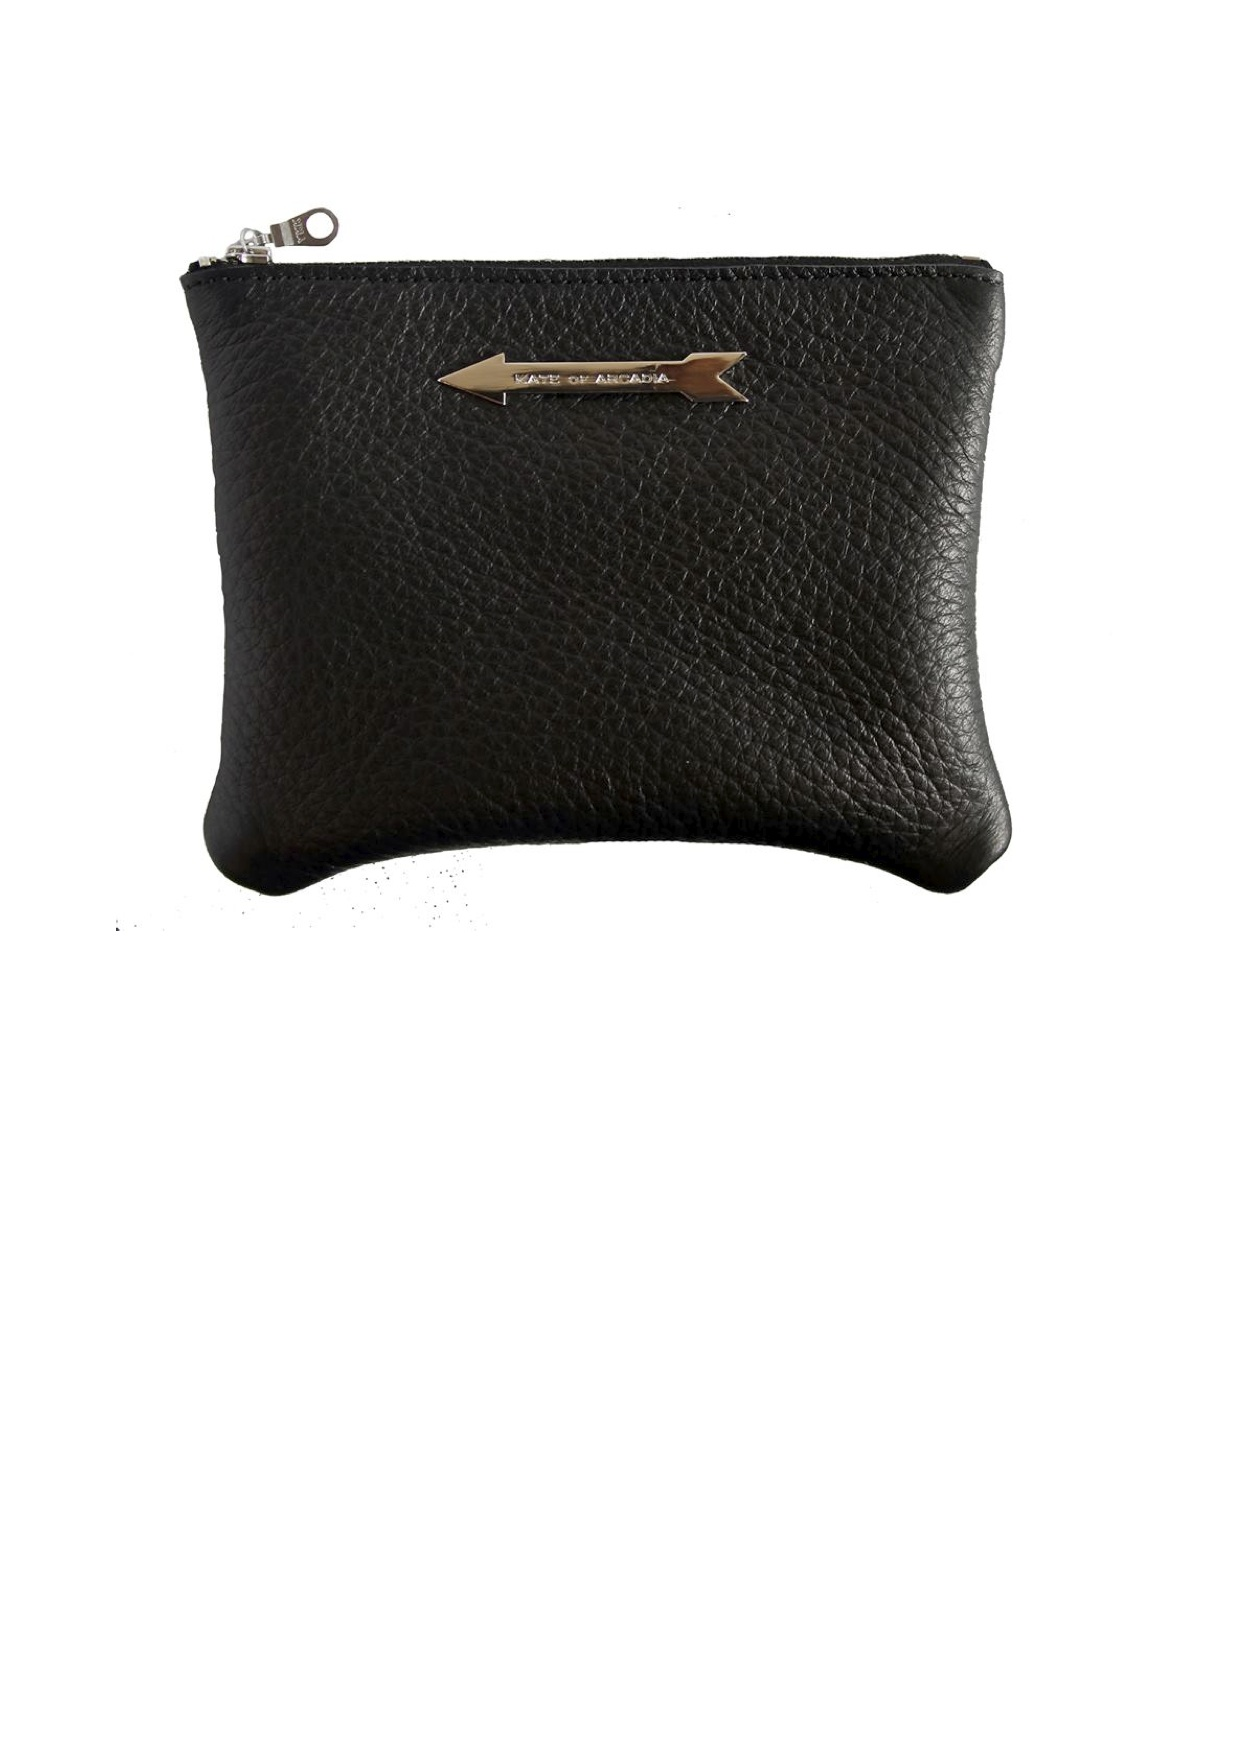 Kate of Arcadia | Arrow purse  | small |McATamney Gallery | Geraldine NZ